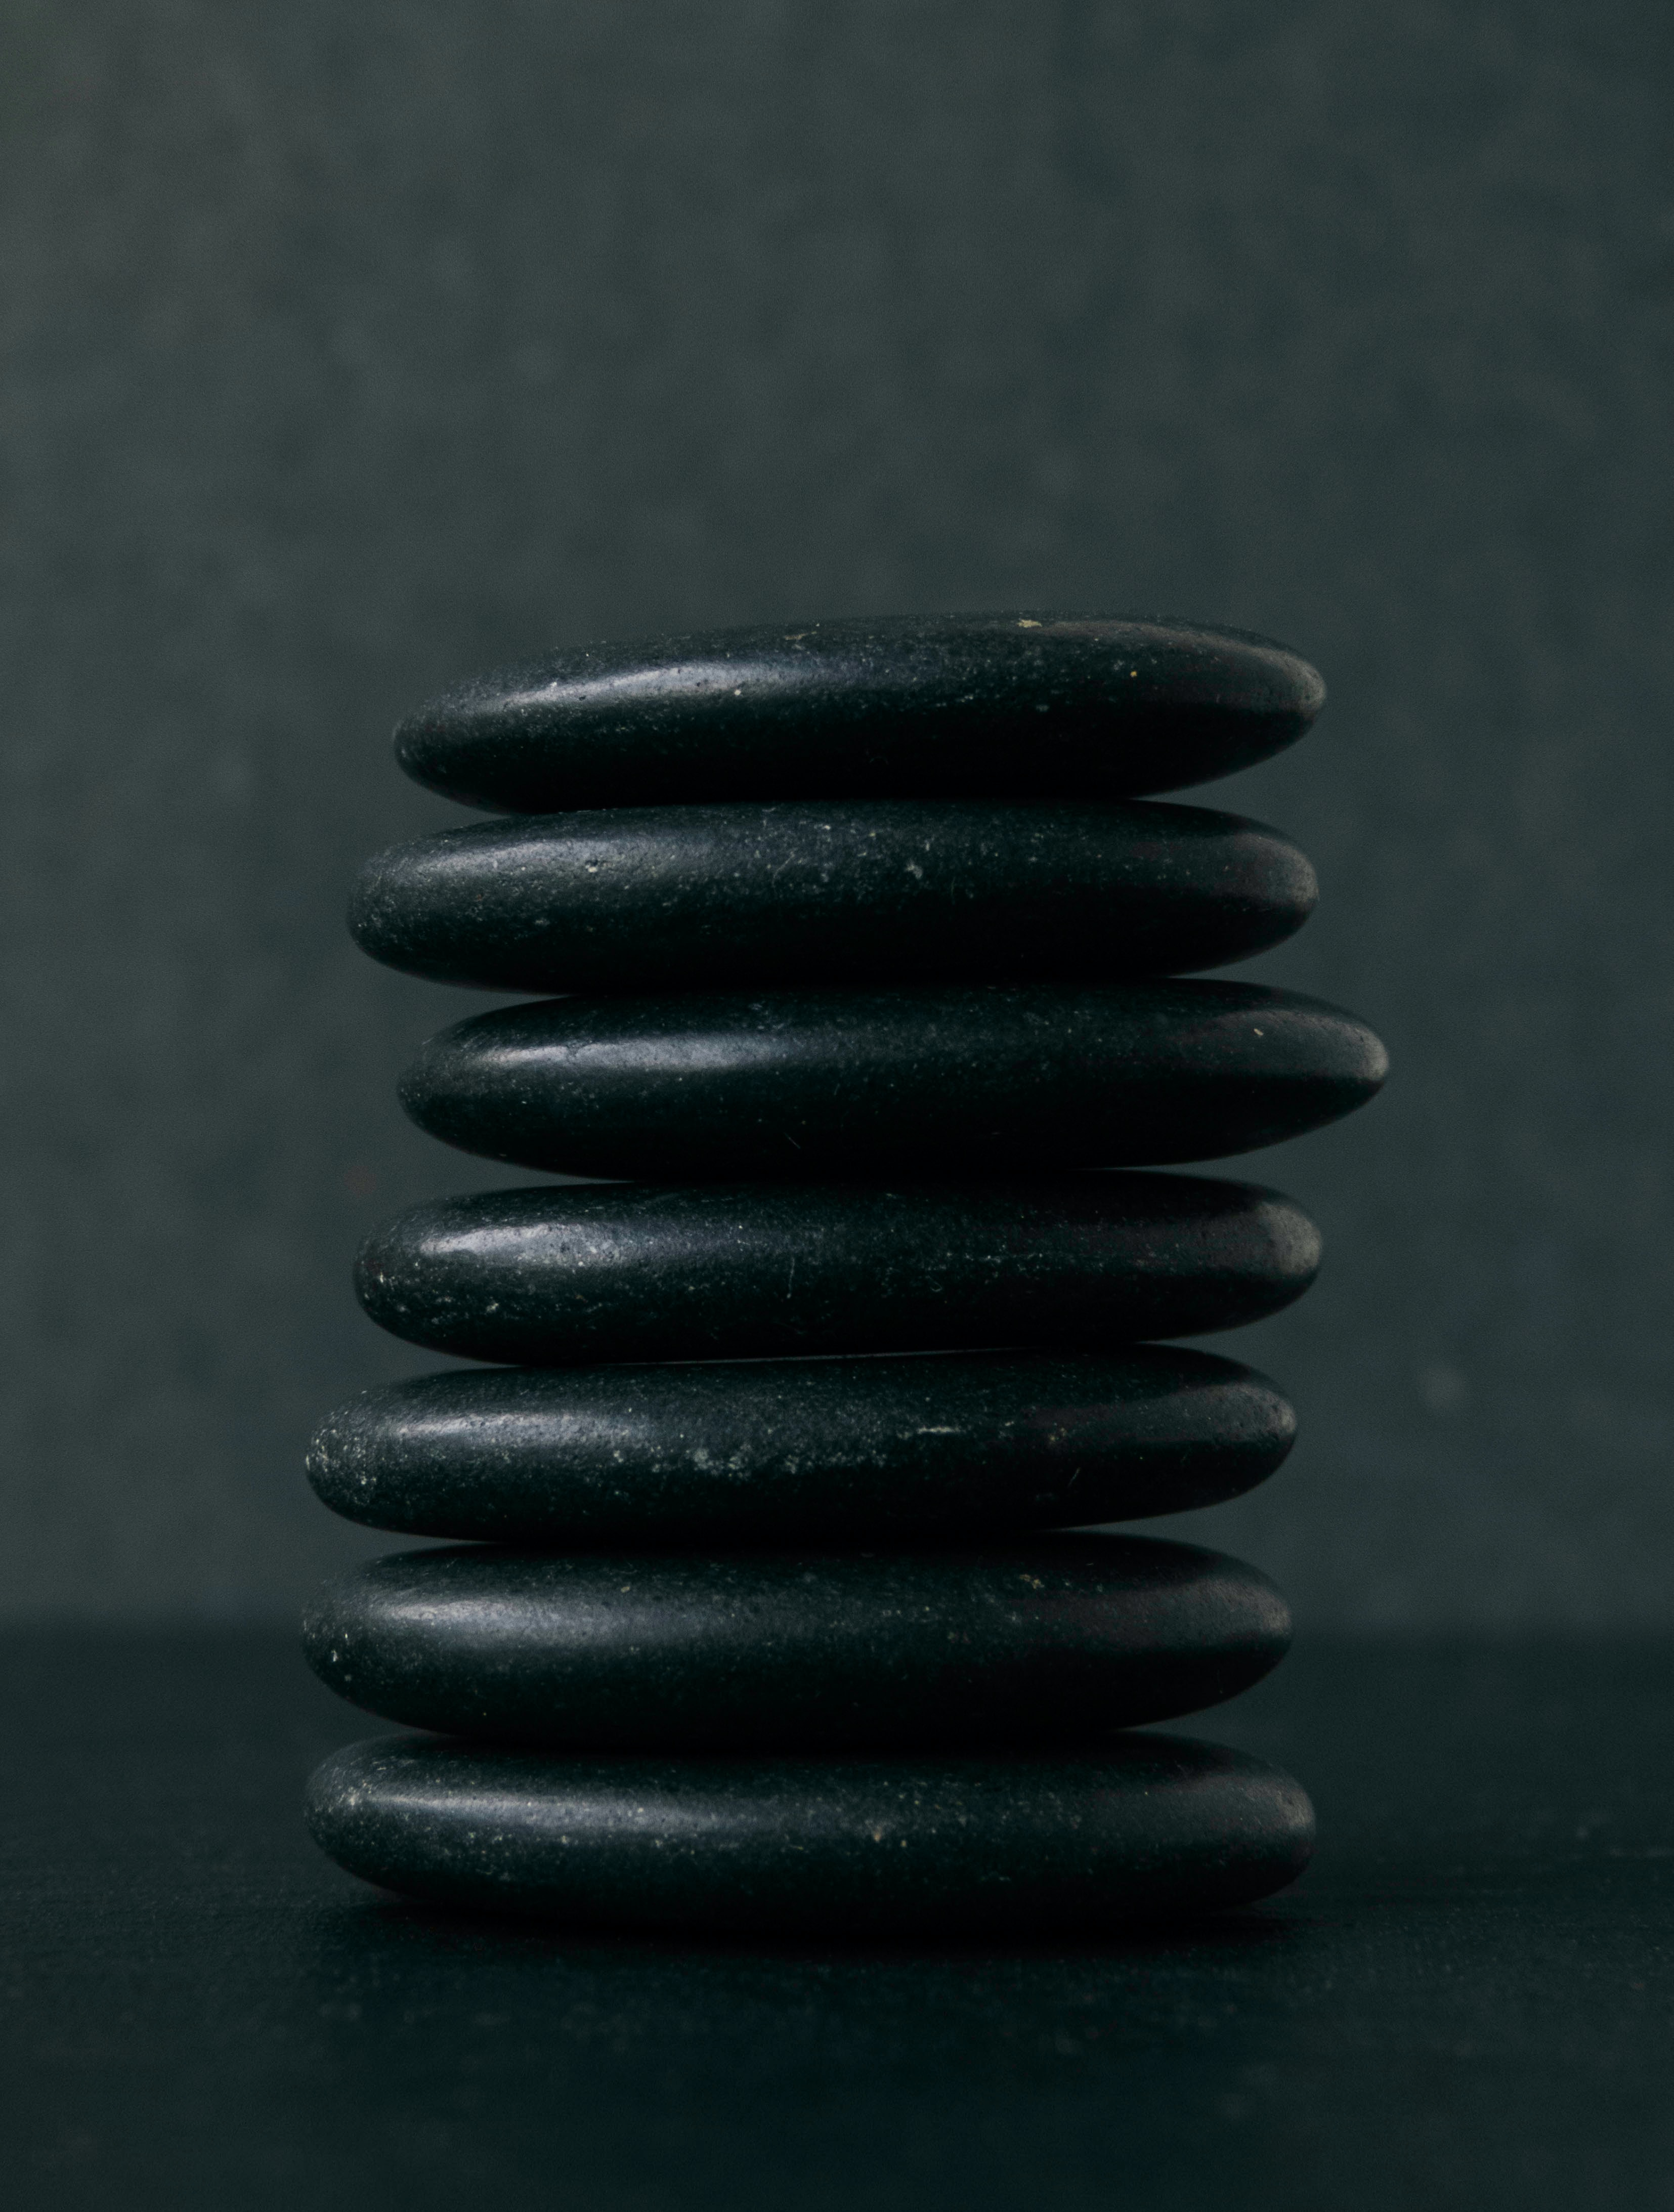 Hot stones in a stack